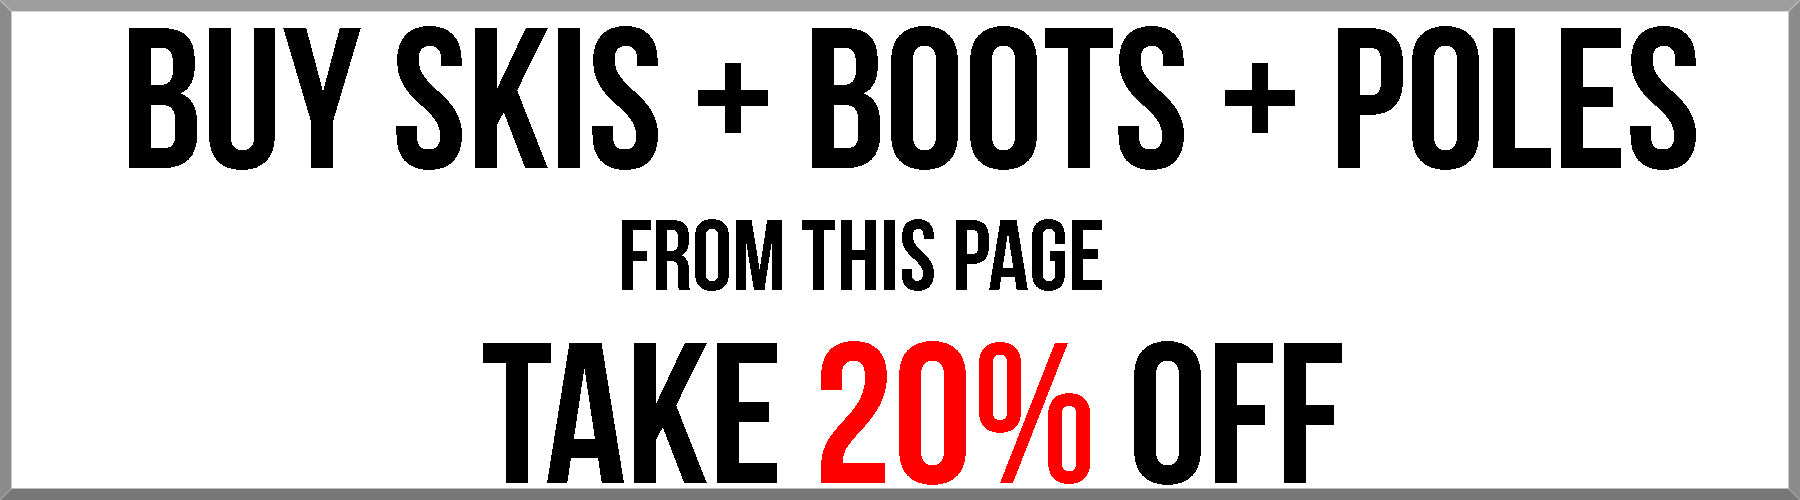 Purchase any combination of ski, boot, and poles from this page and get 20% off. Enter code ME7FP2H84DKD at checkout. Offer cannot be combined with any other coupon codes.